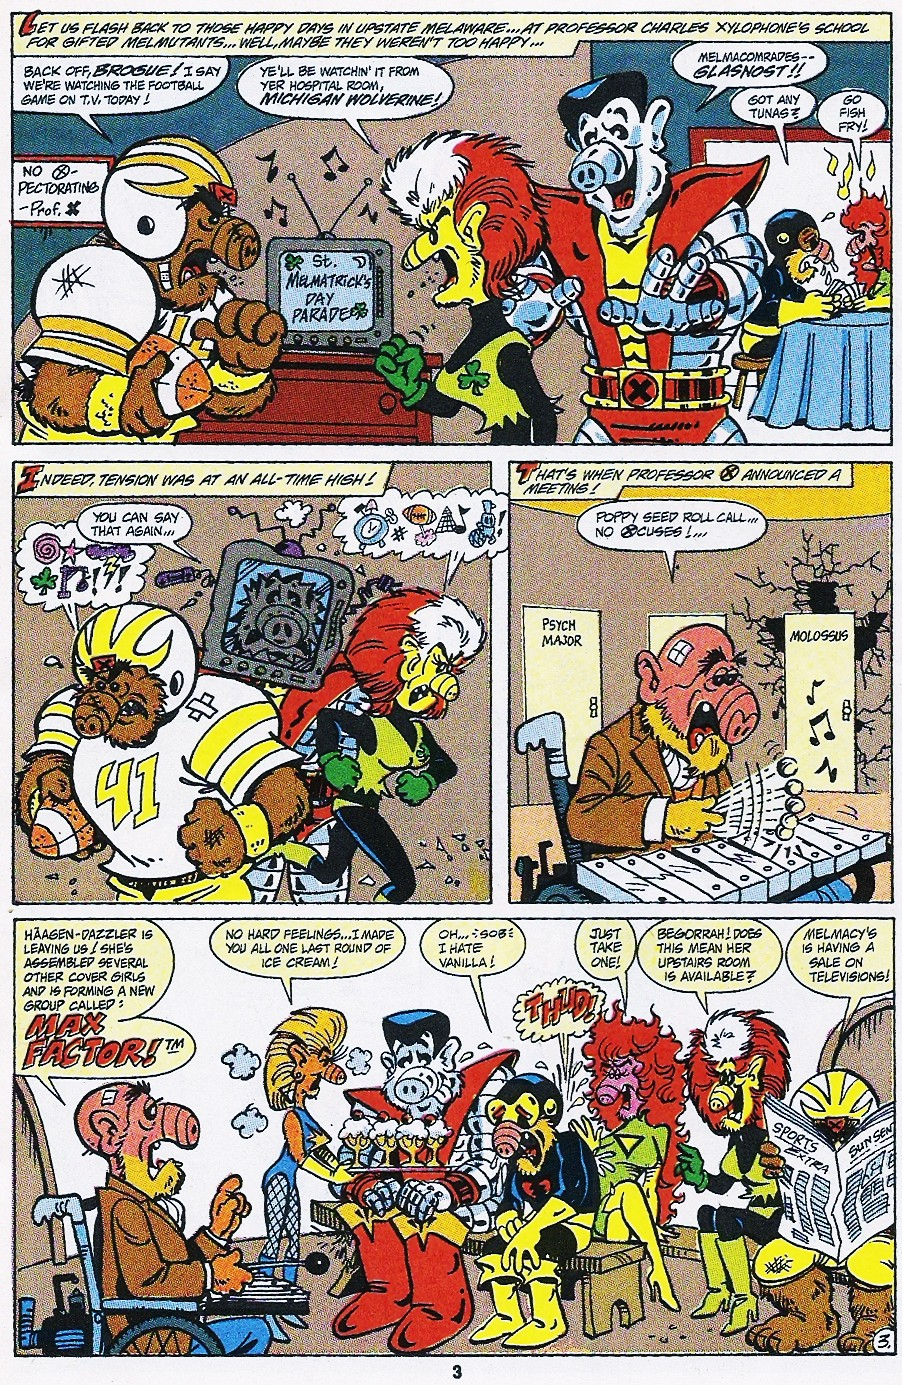 Read online ALF comic -  Issue #44 - 5